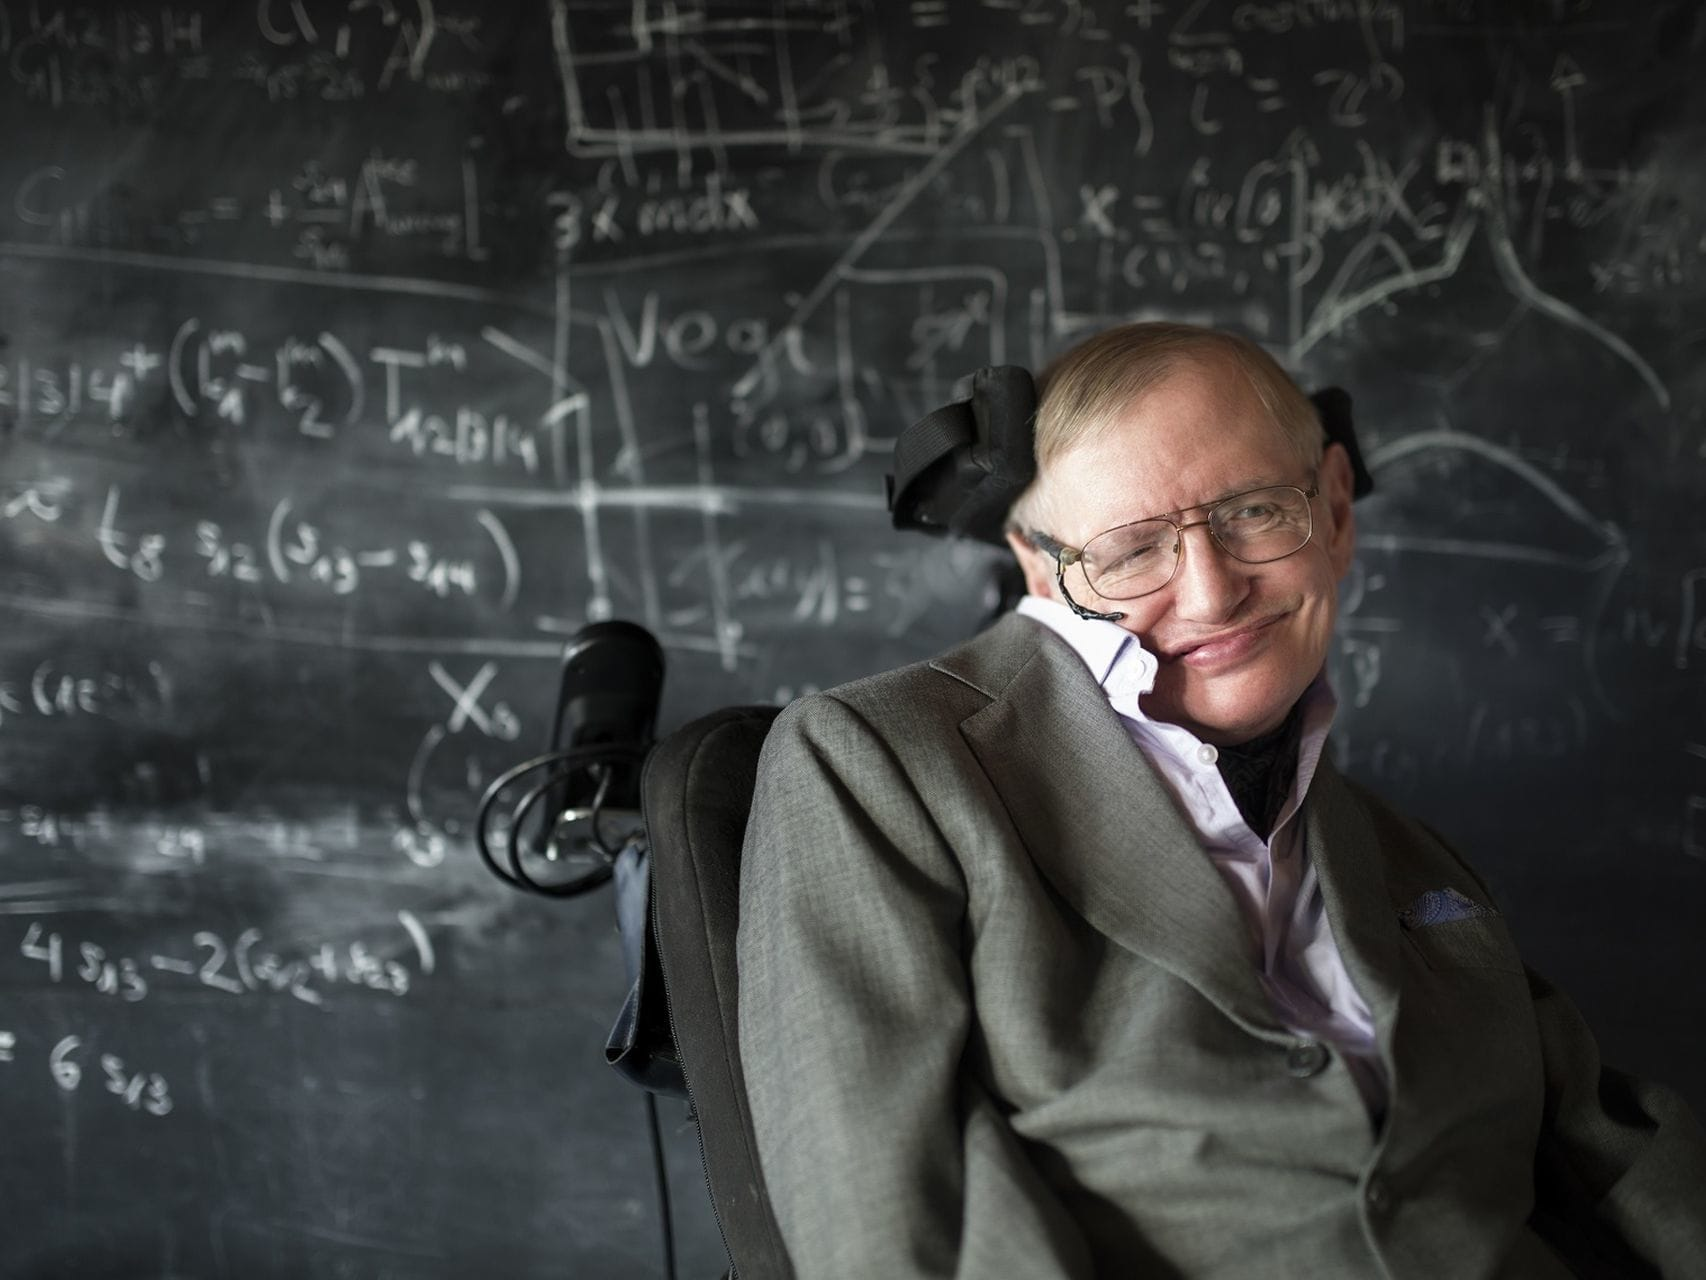 Top 10 Smartest People 2017 - Top ten lists of everything